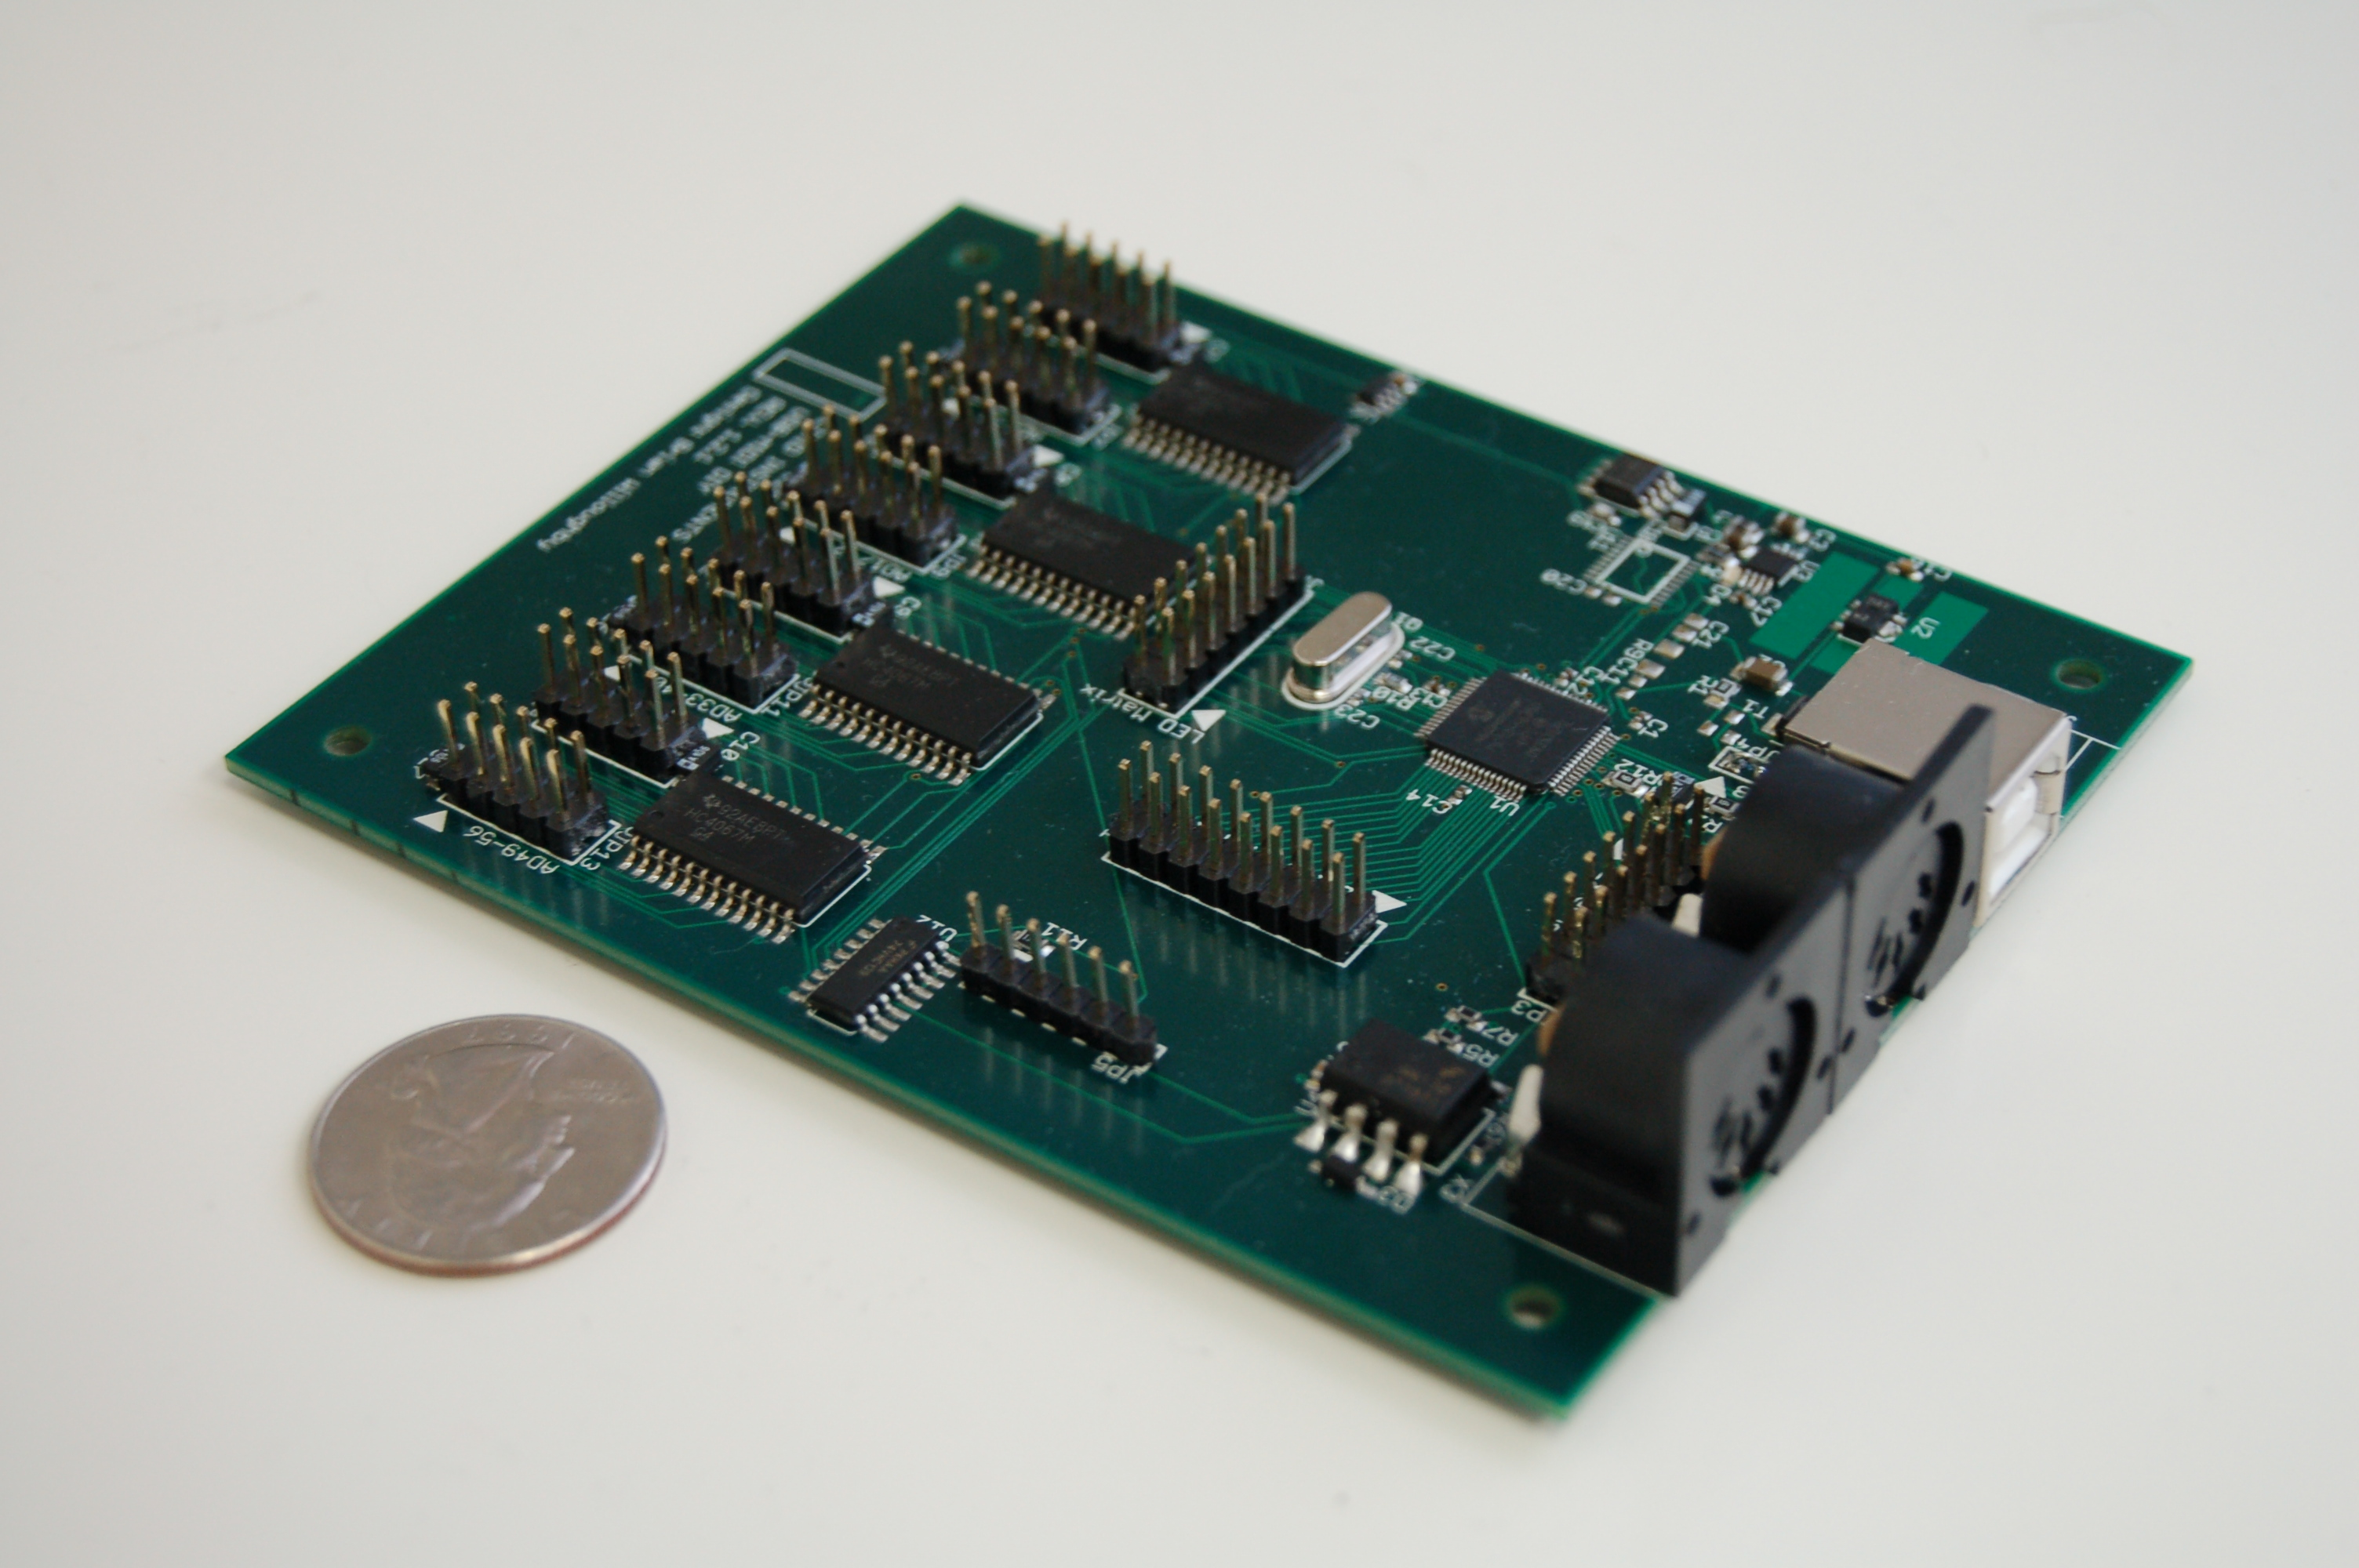 File:Livid Builder Brain board compared with a coin - angled (2010 ...